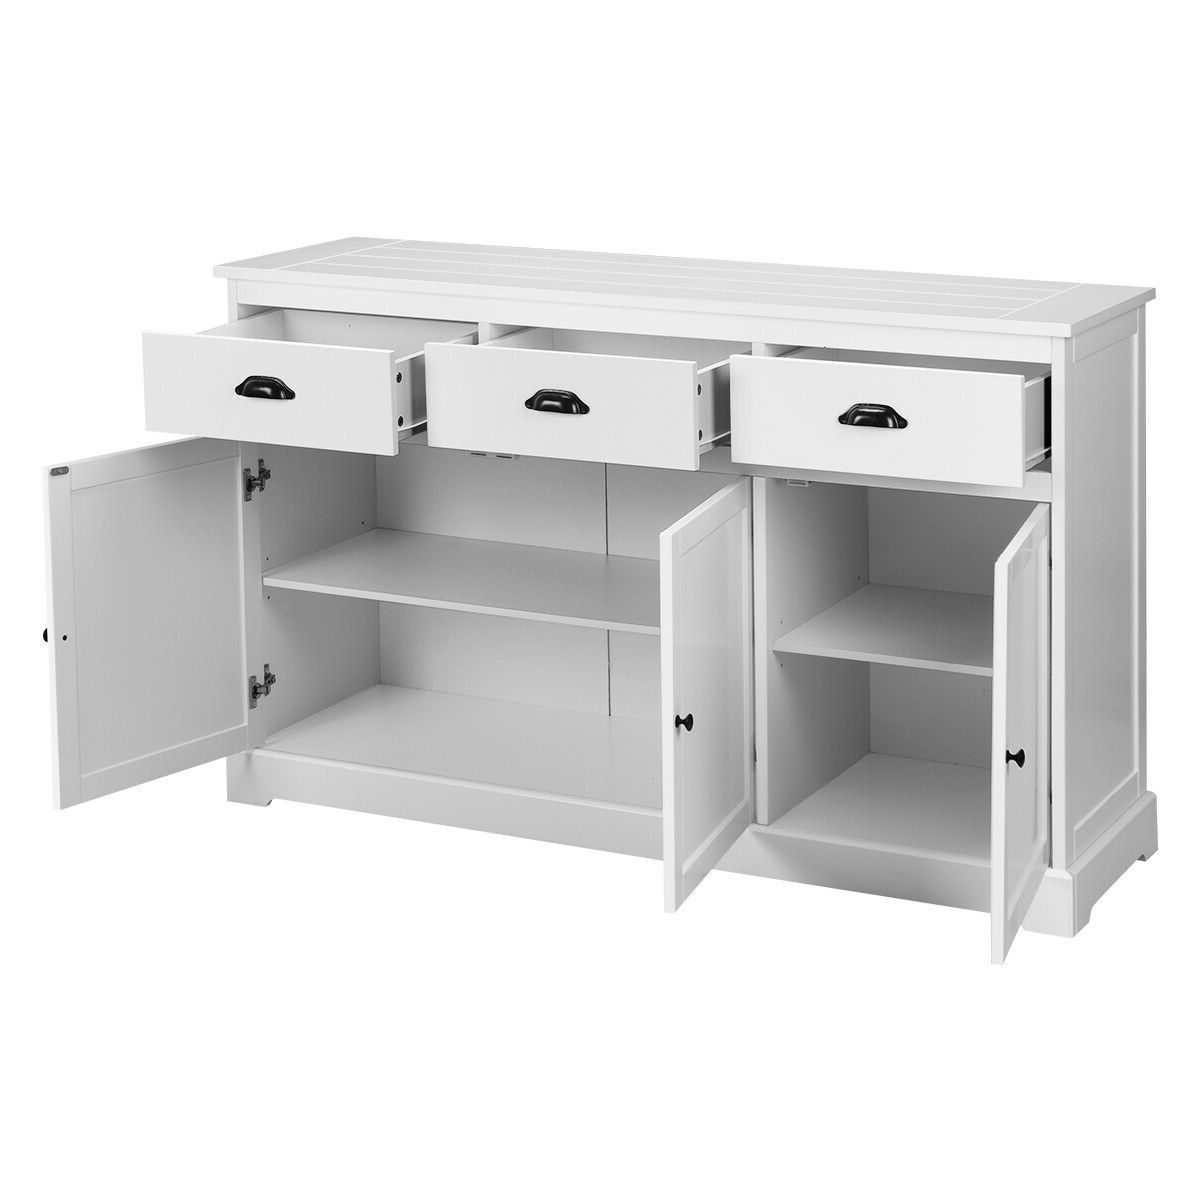 3 Drawers Console Table Sideboard Buffet Cabinet Within 3 Drawer Black Storage Buffets (View 16 of 20)